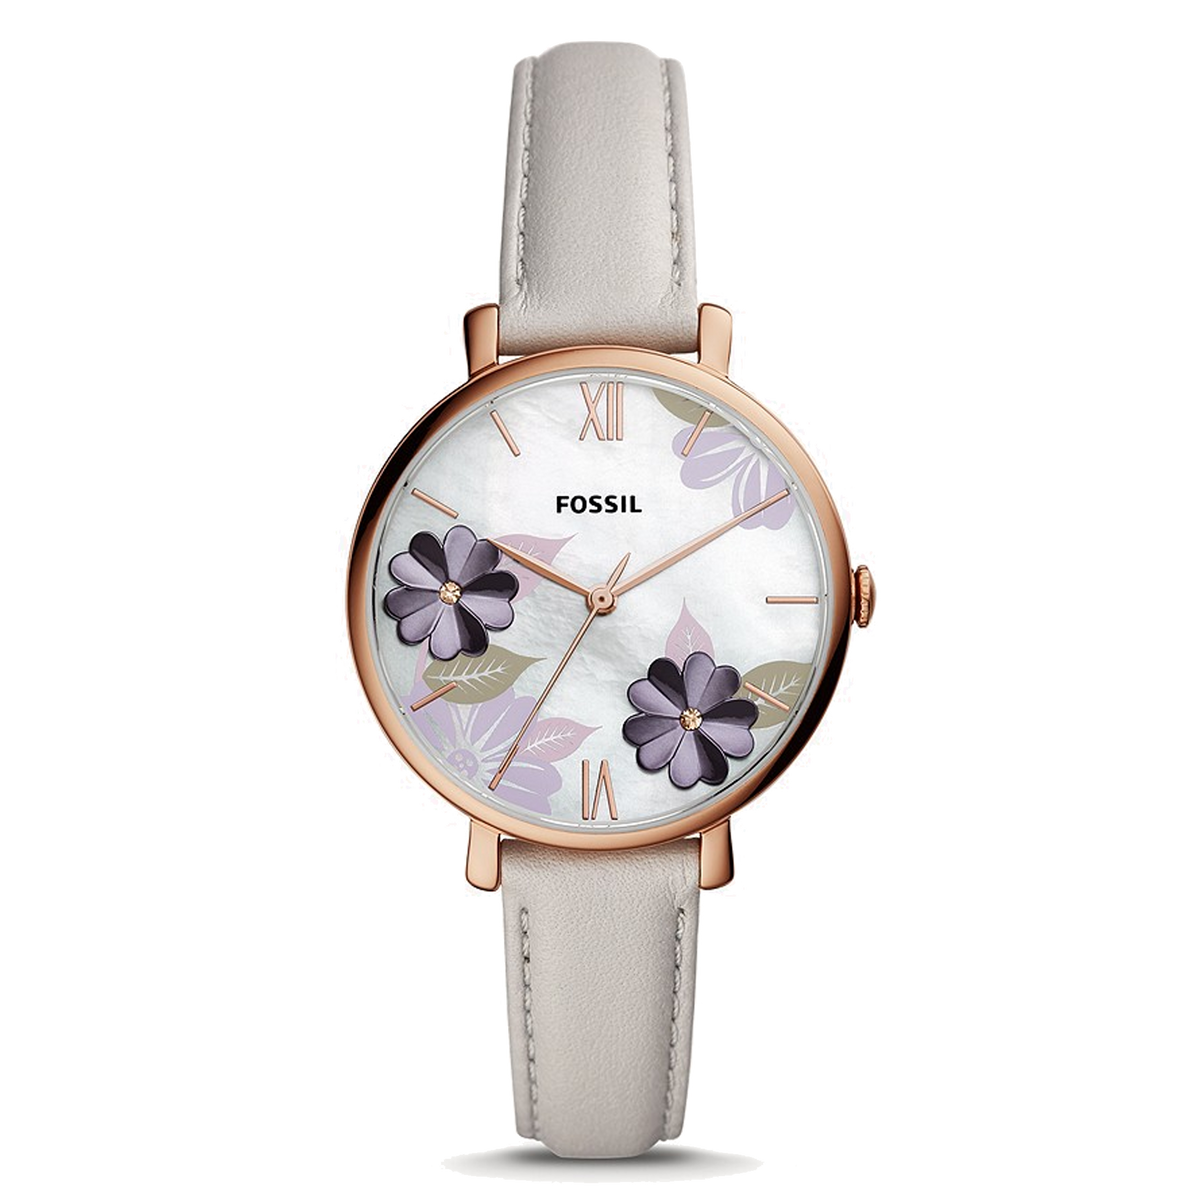 Fossil Watch Jacqueline - Flower Dial